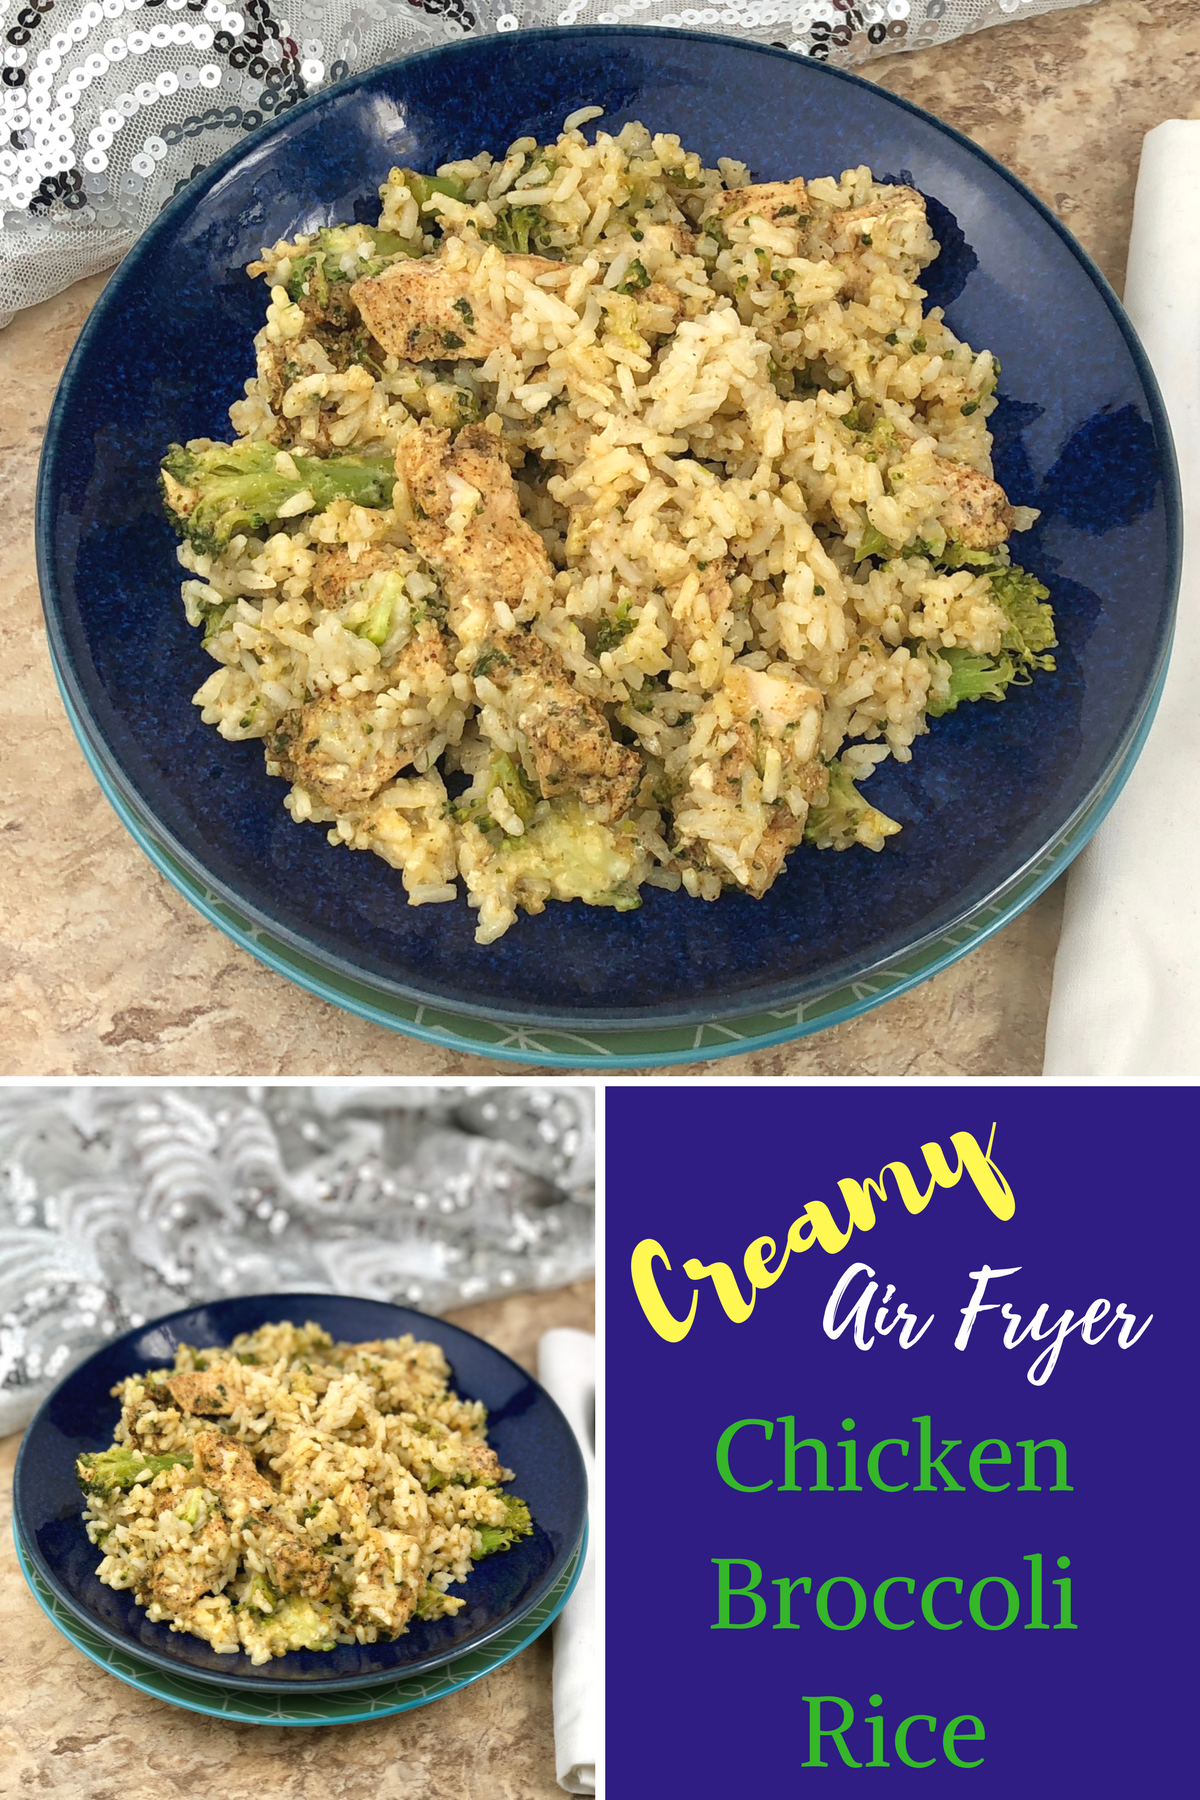 This creamy Creamy Air Fryer Chicken Broccoli Rice is a very simple recipe to make that creates a single serve dish. You create that all-in-one healthy dinner in foilpackets that are rich in flavor and will leave your family feeling satisfied. #airfryer #chicken #creamy #chickenrice #broccolirice #rice #broccoli